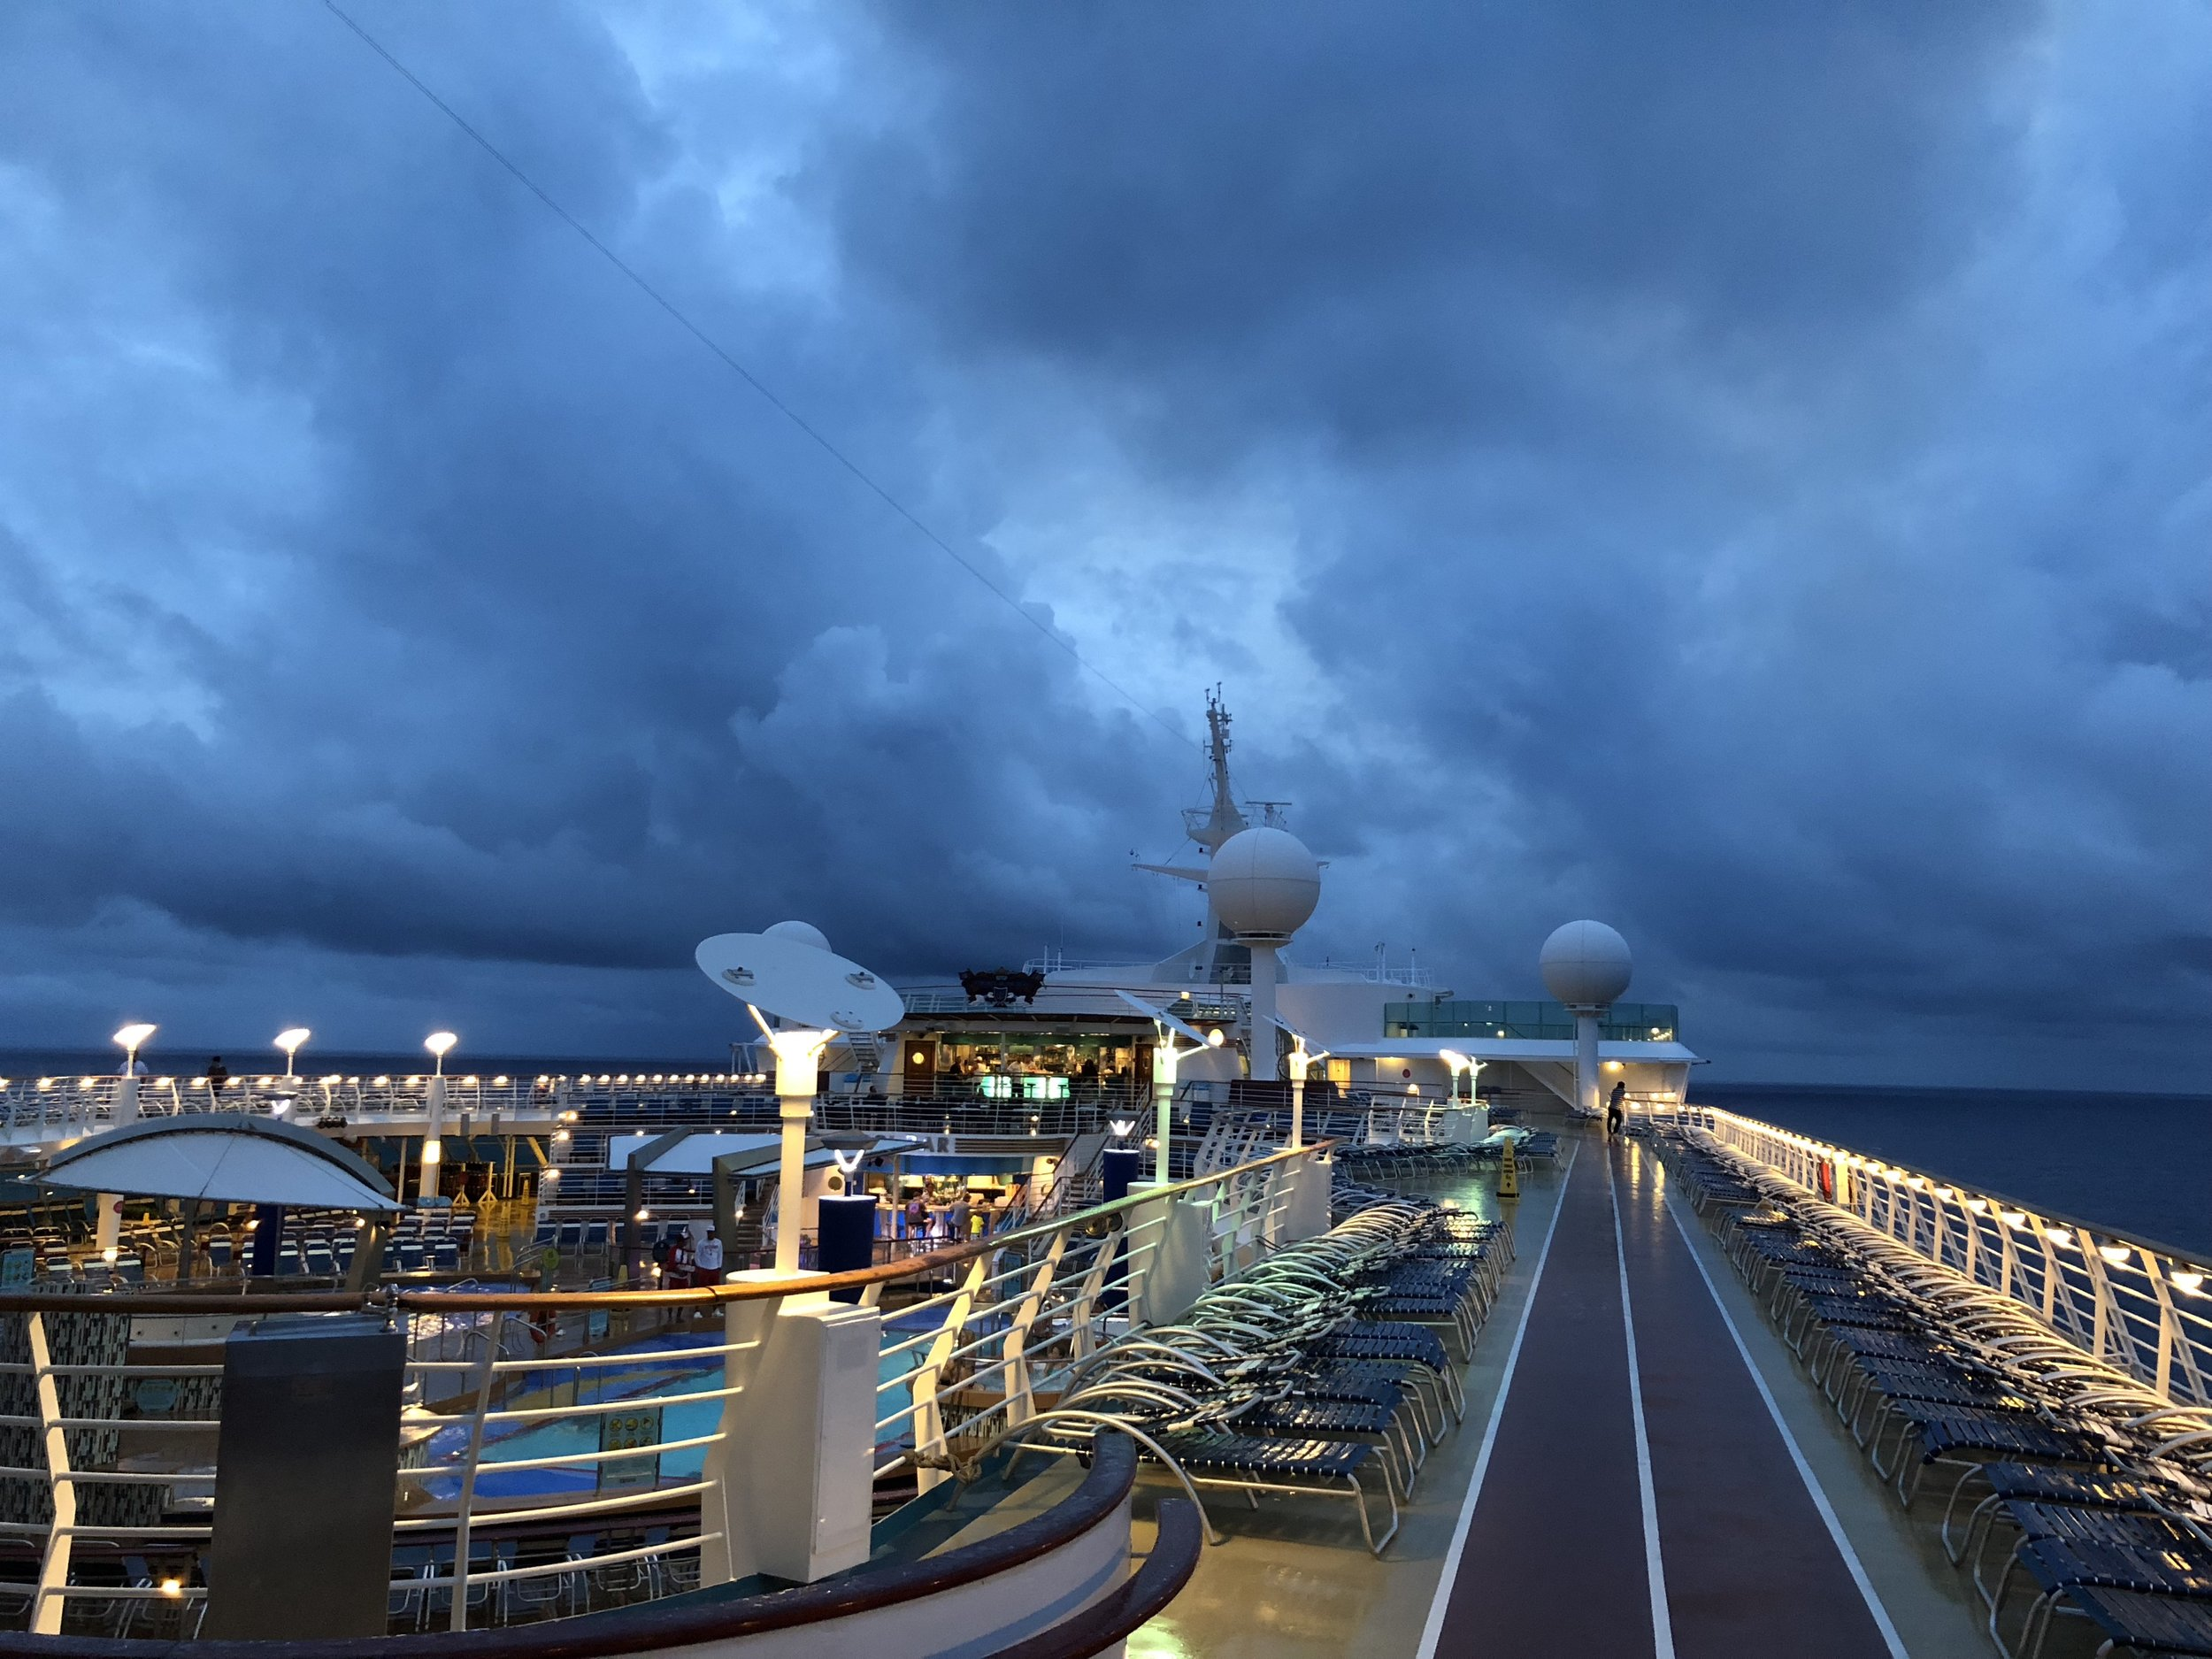 All kinds of weather when at sea.